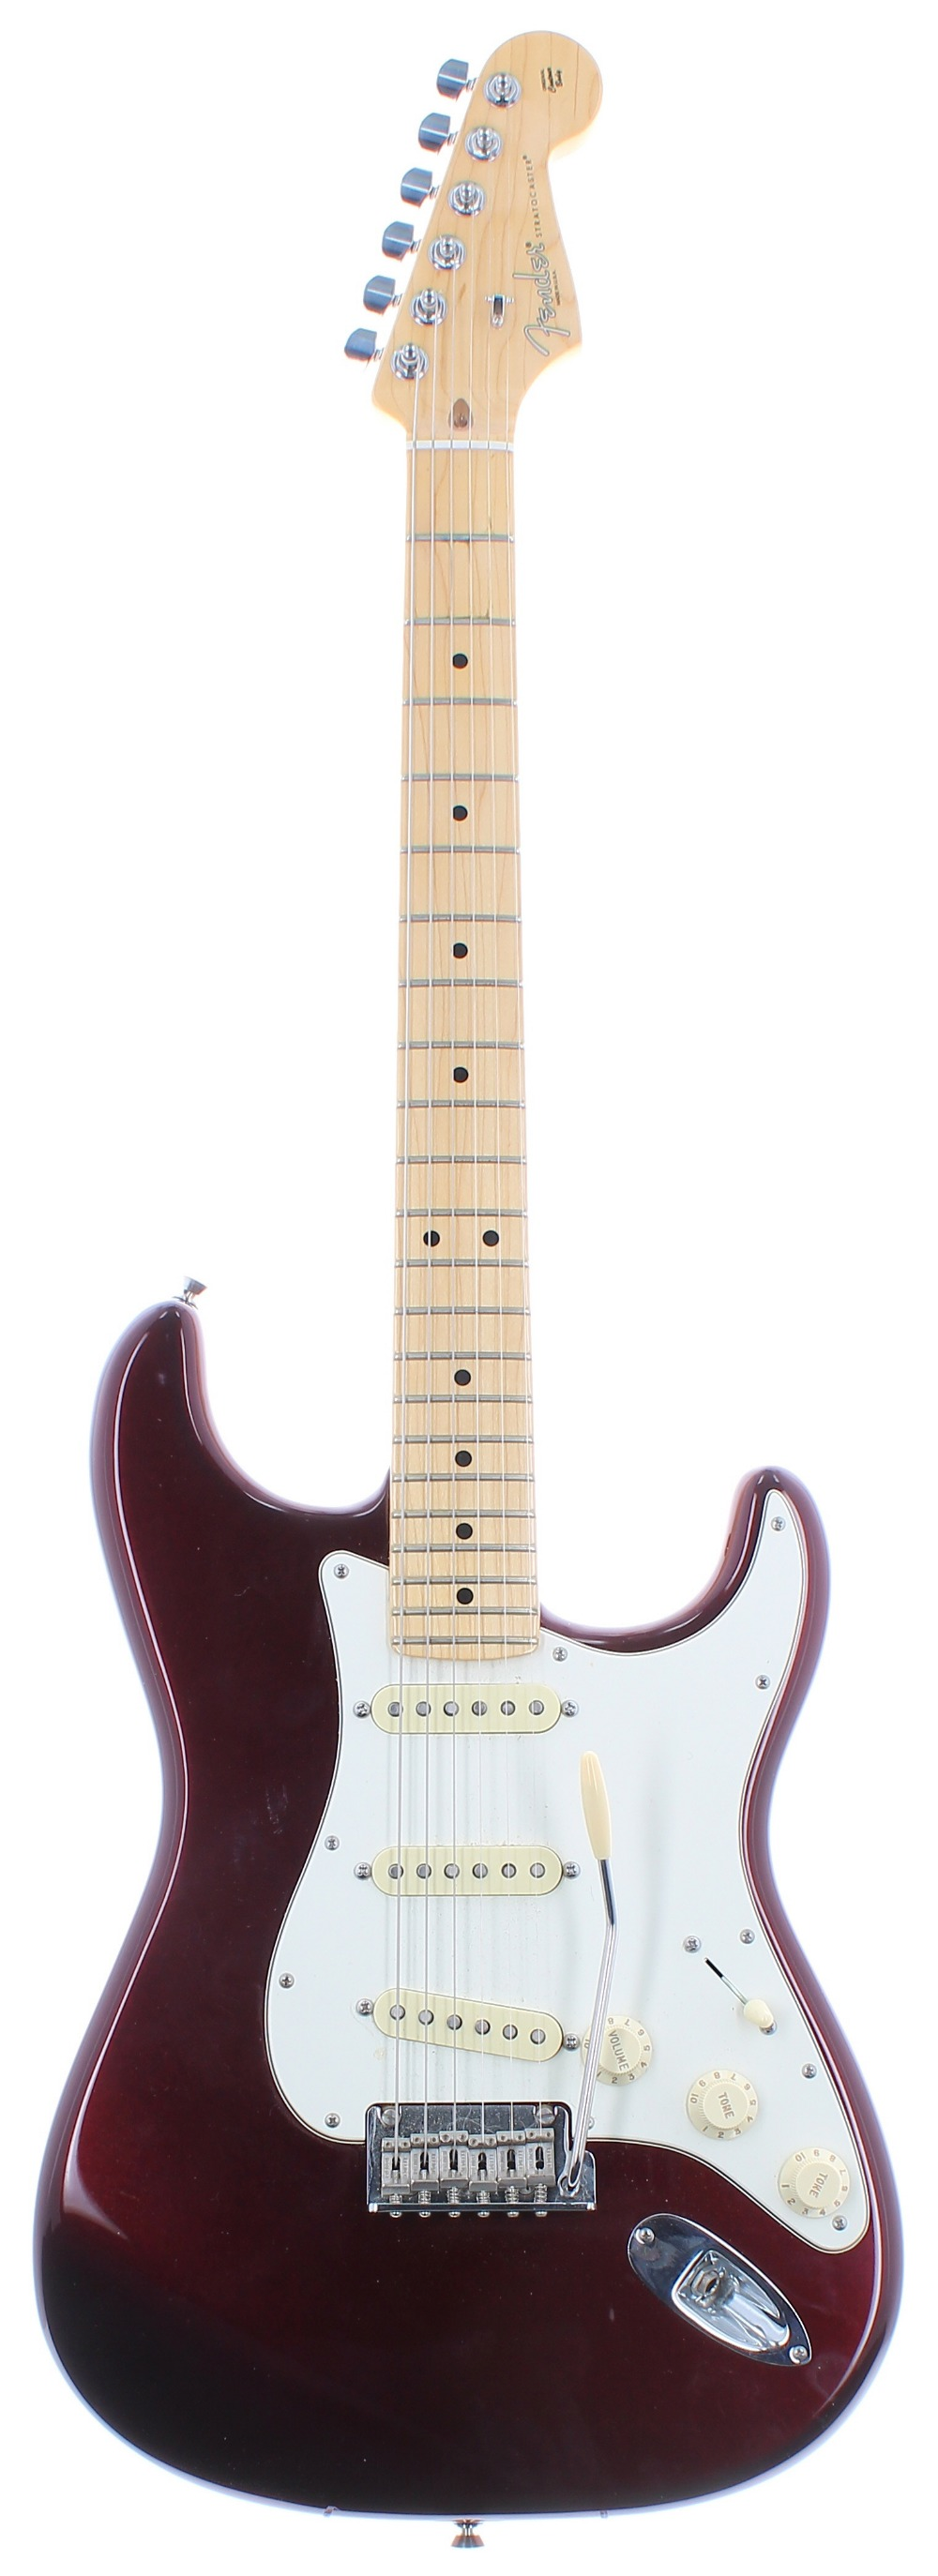 2015 Fender American Standard Stratocaster electric guitar, made in USA, ser. no. US15xxxxx5;